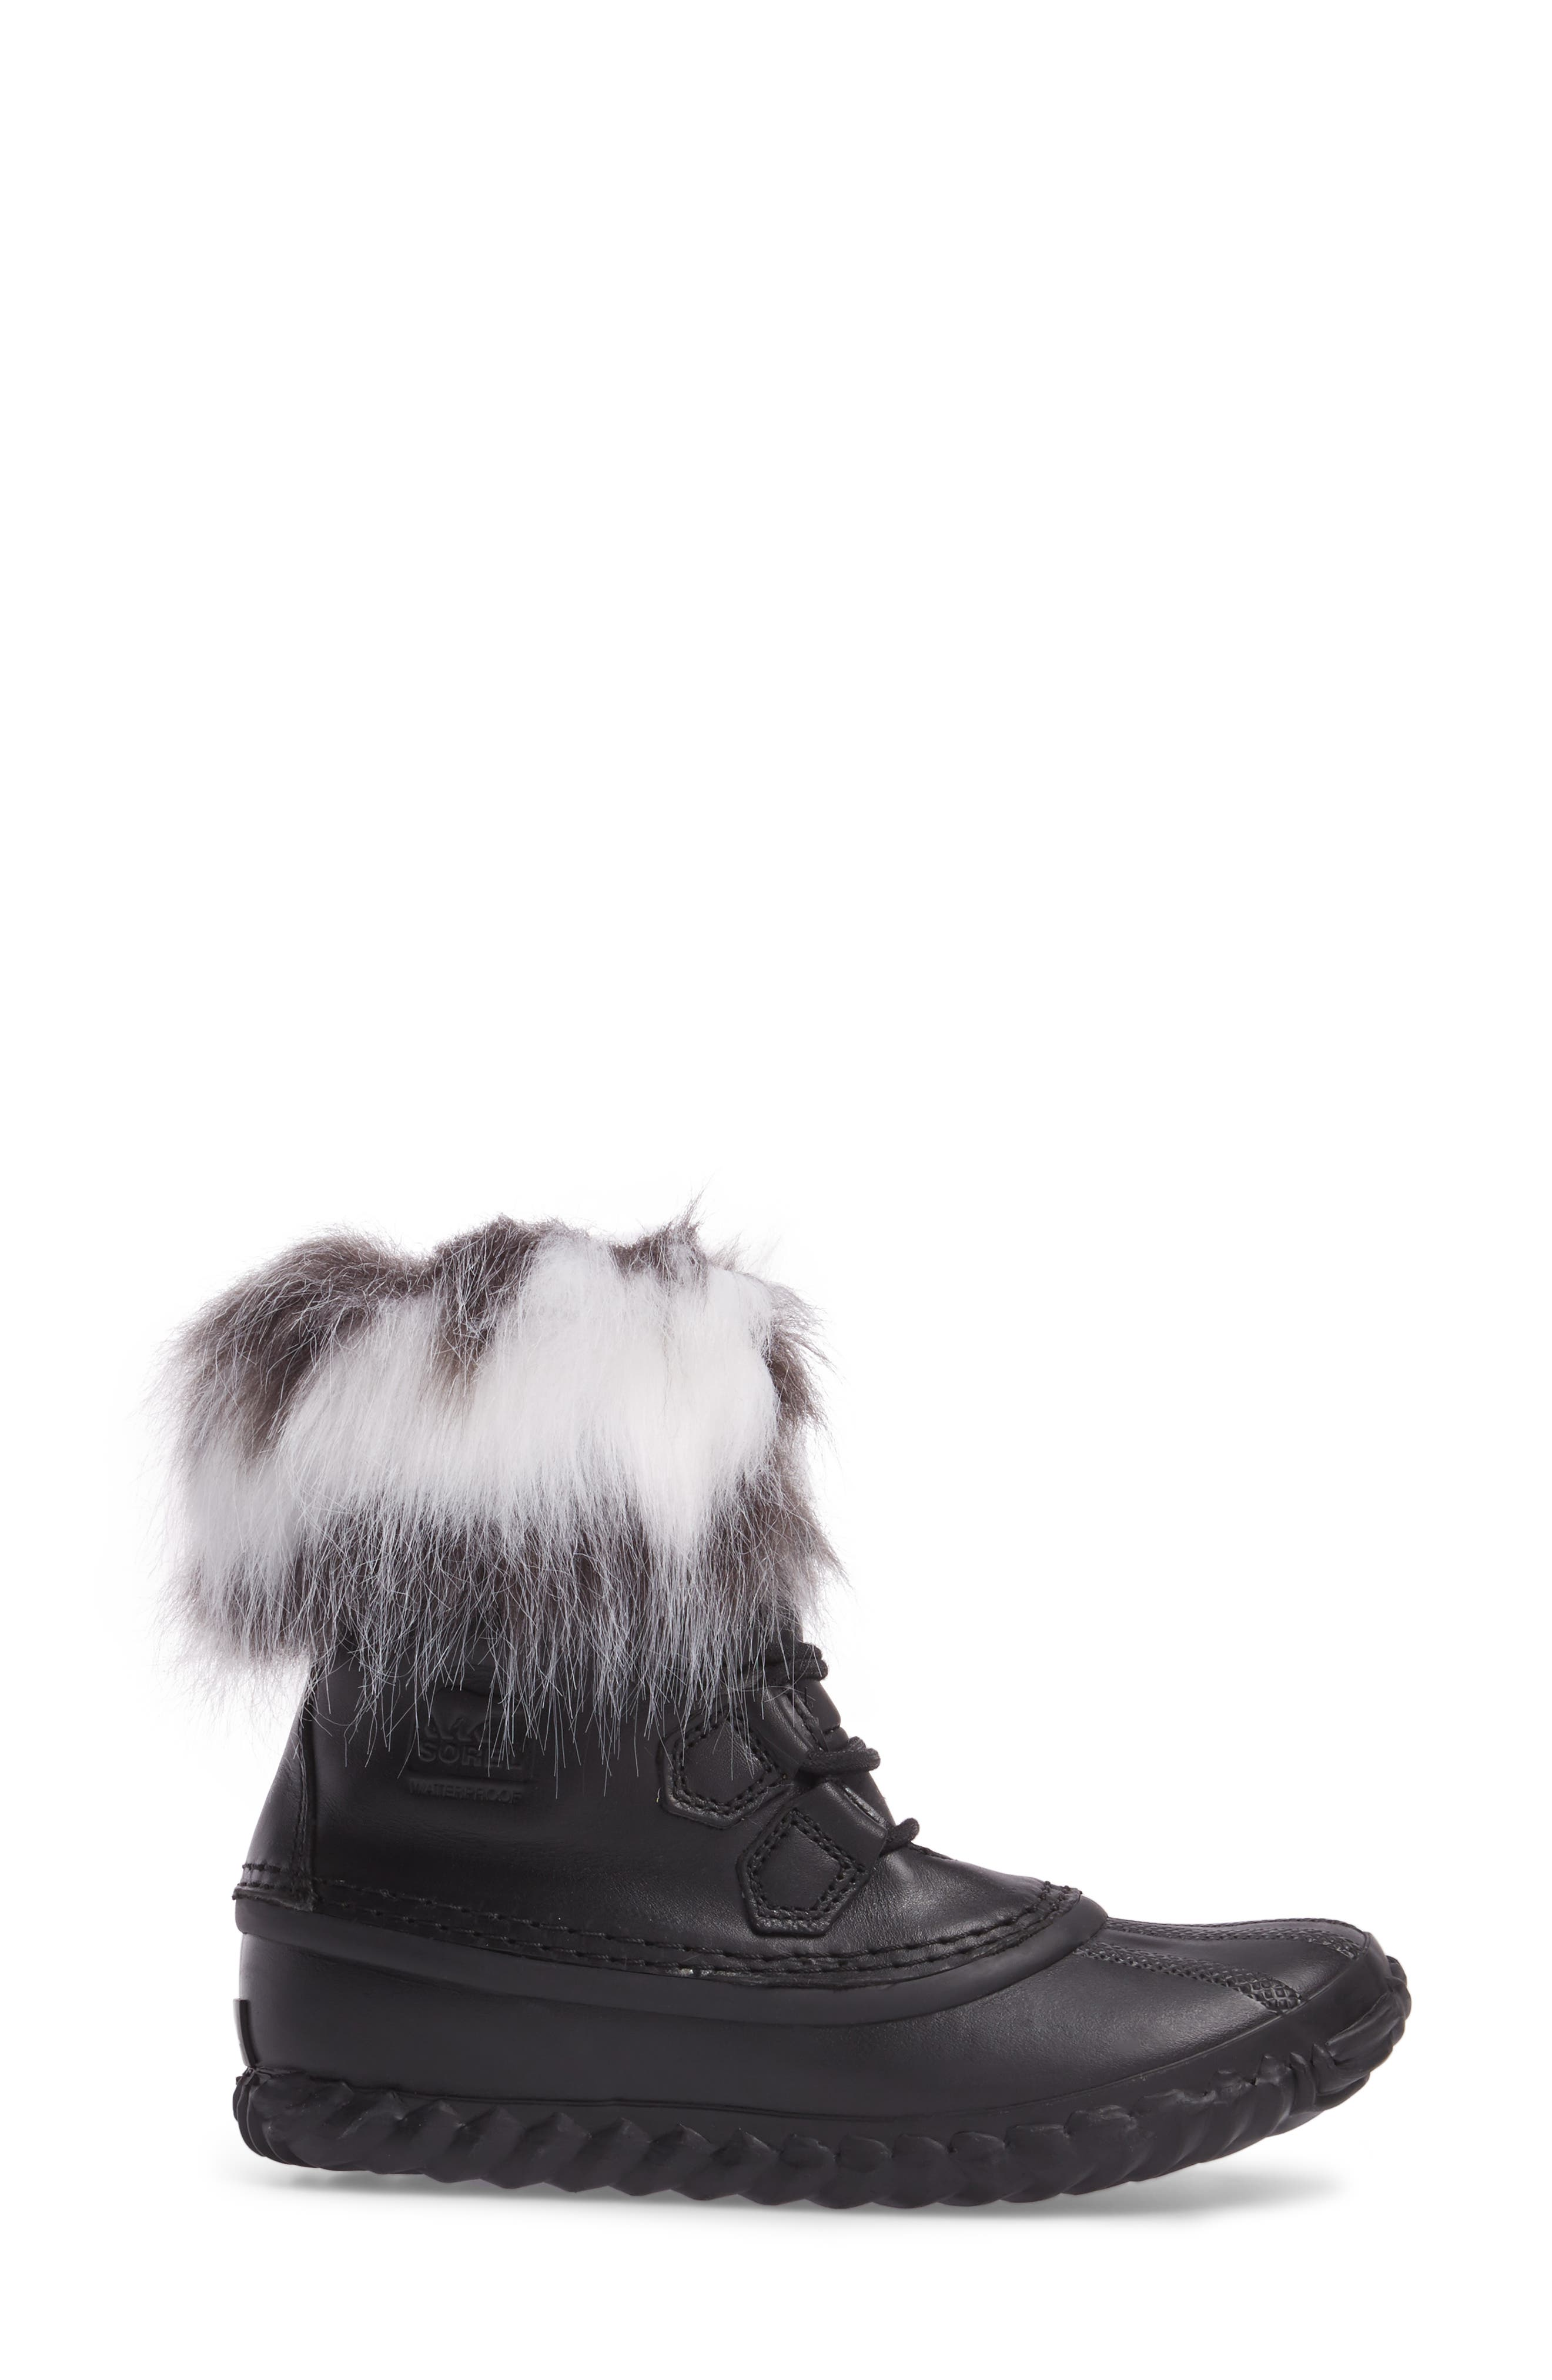 Out 'N About Waterproof Luxe Bootie,                             Alternate thumbnail 3, color,                             Black/ Sea Salt